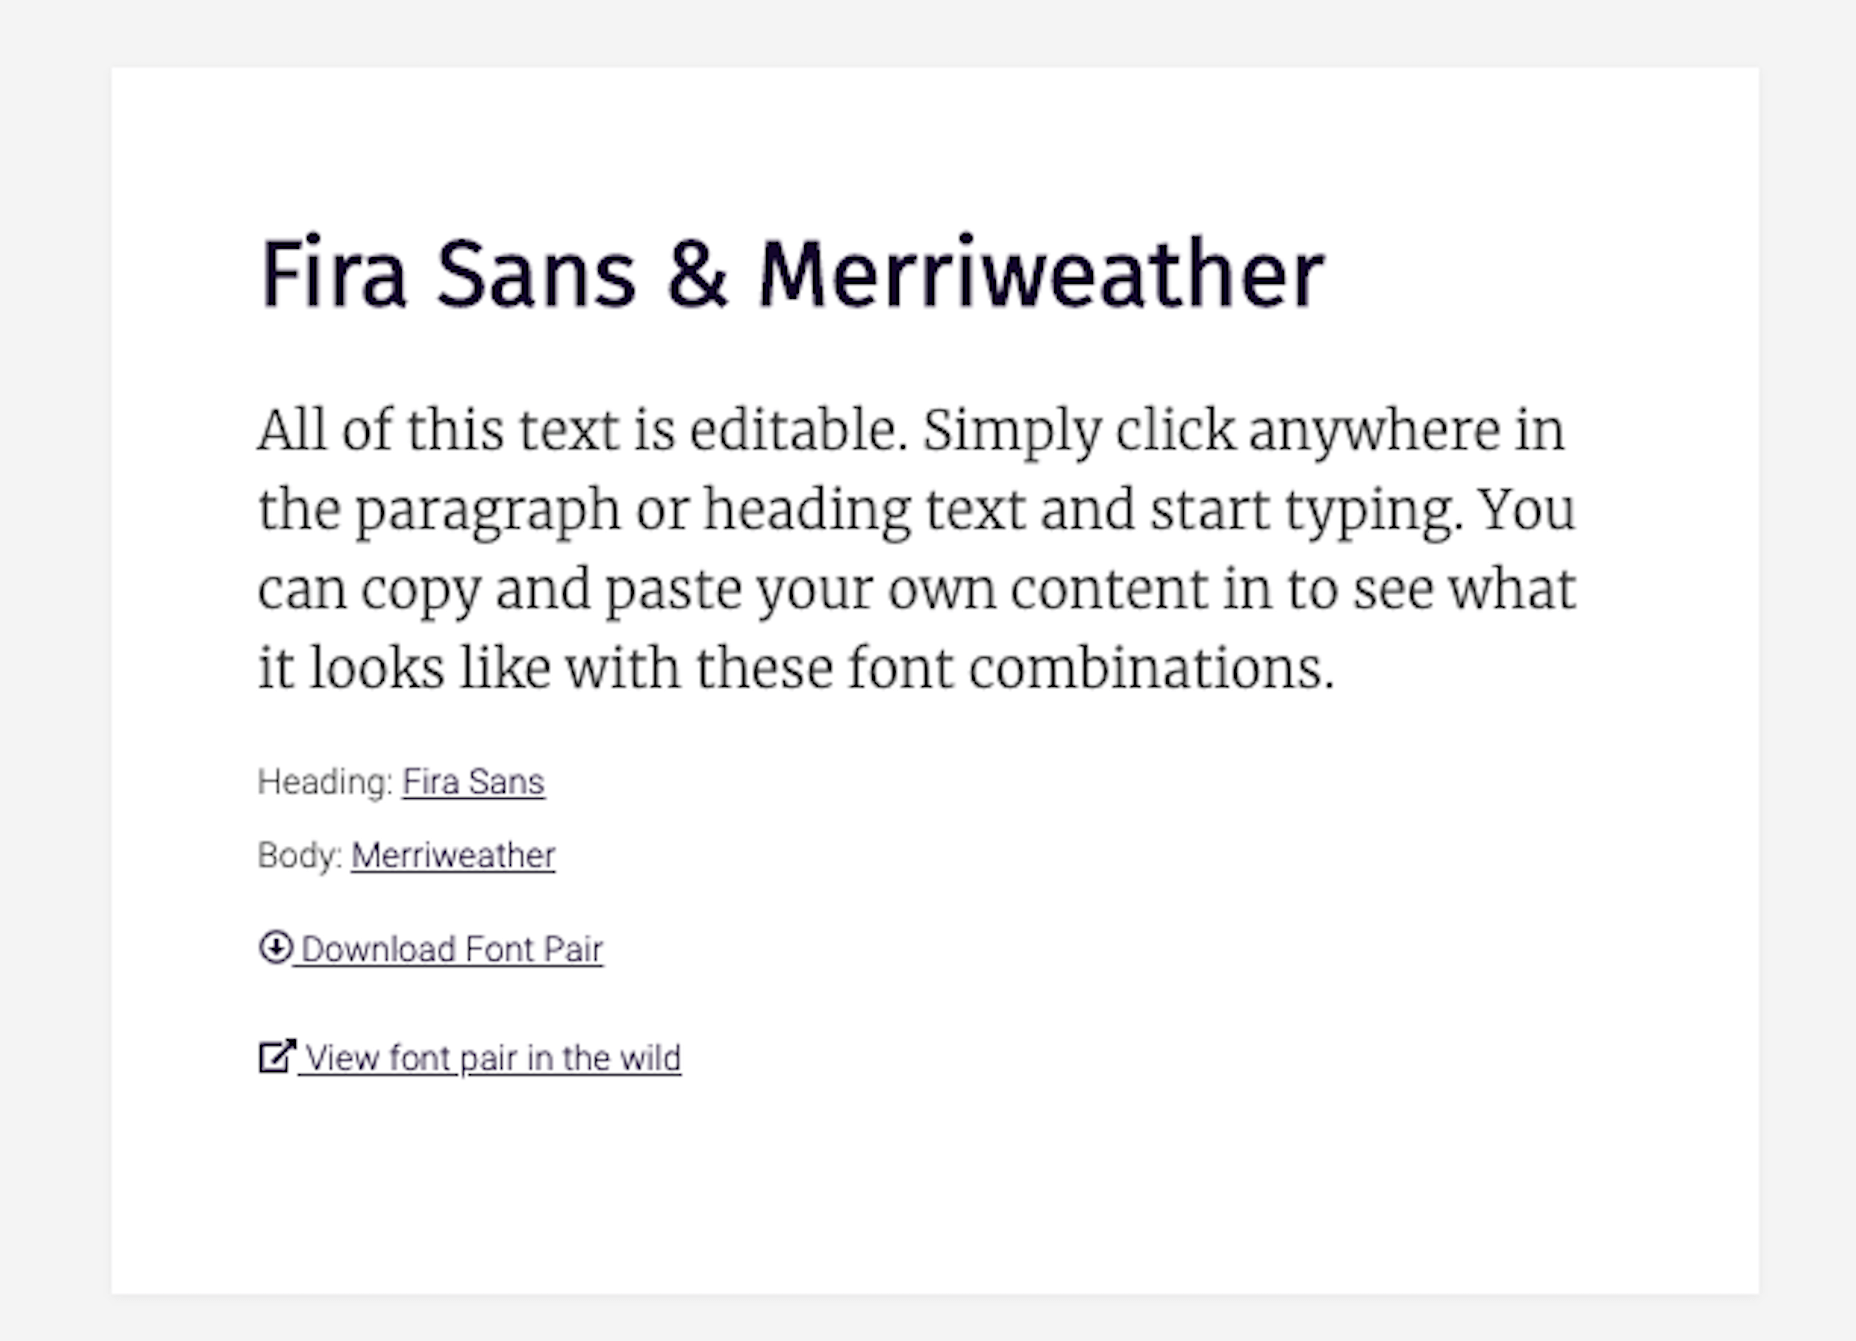 FontPair shows what the combination of Fira Sans and Merriweather look like